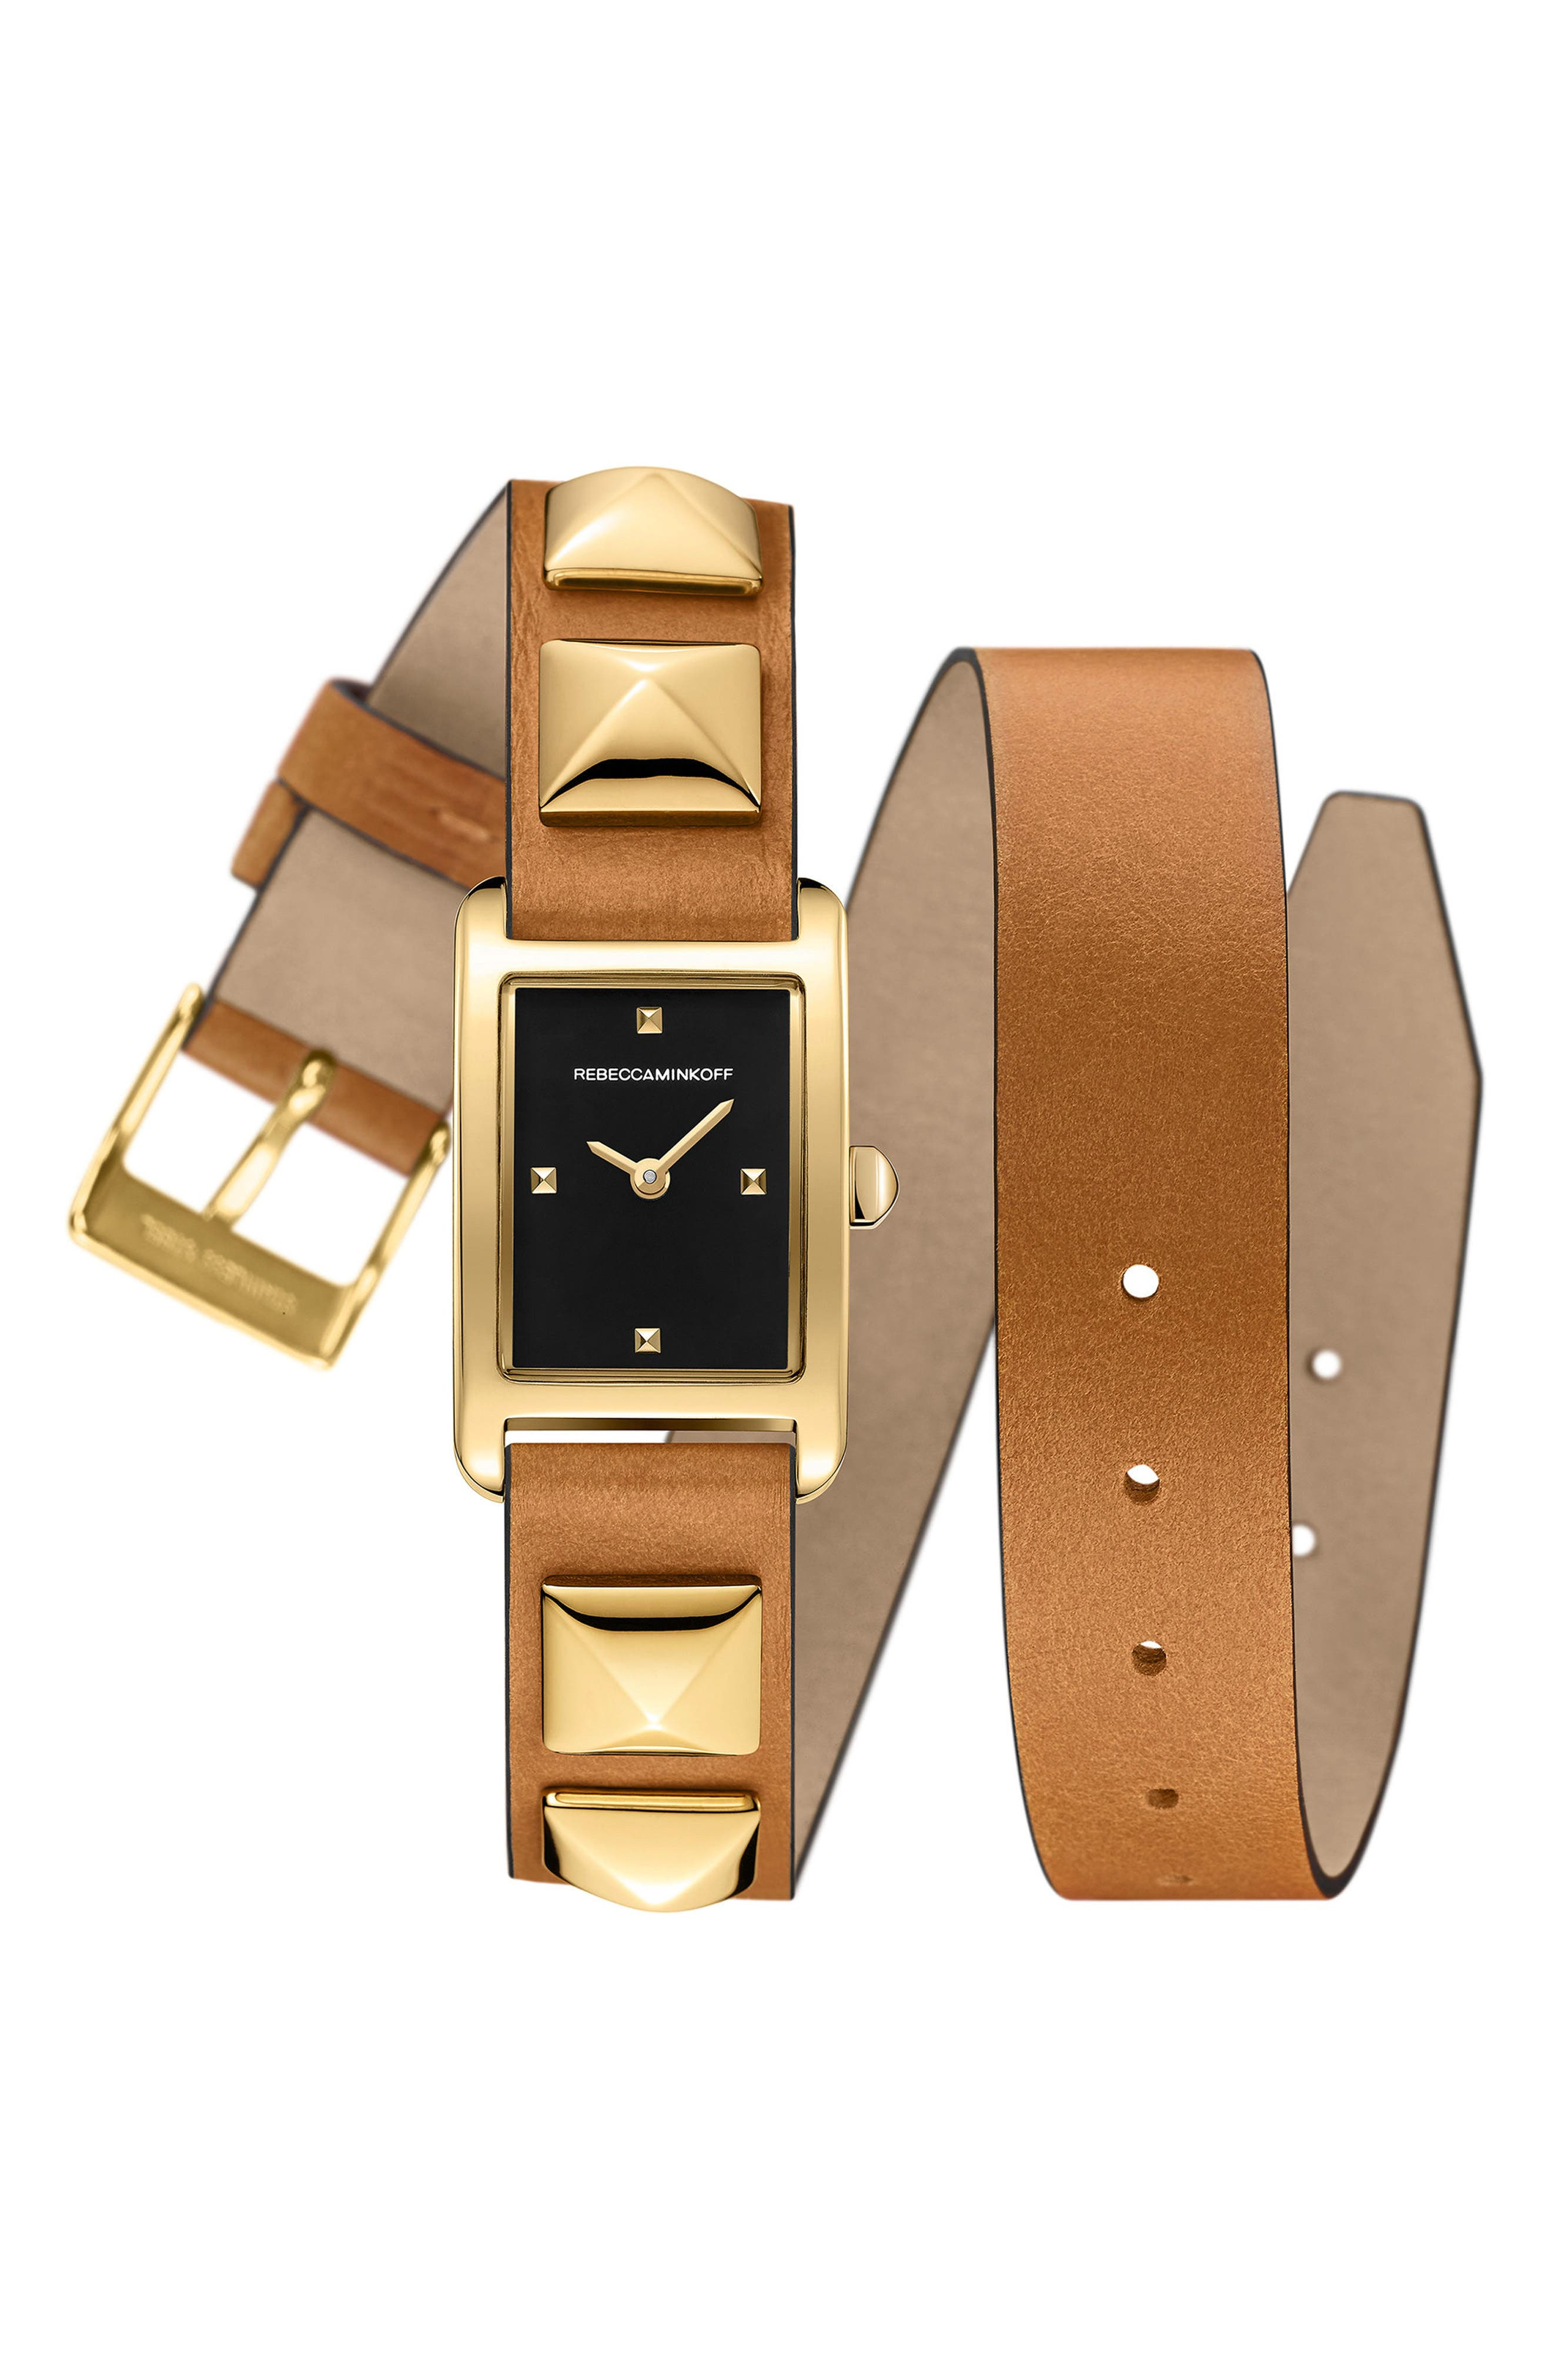 Main Image - Rebecca Minkoff Wrap Leather Strap Watch, 19mm x 30mm